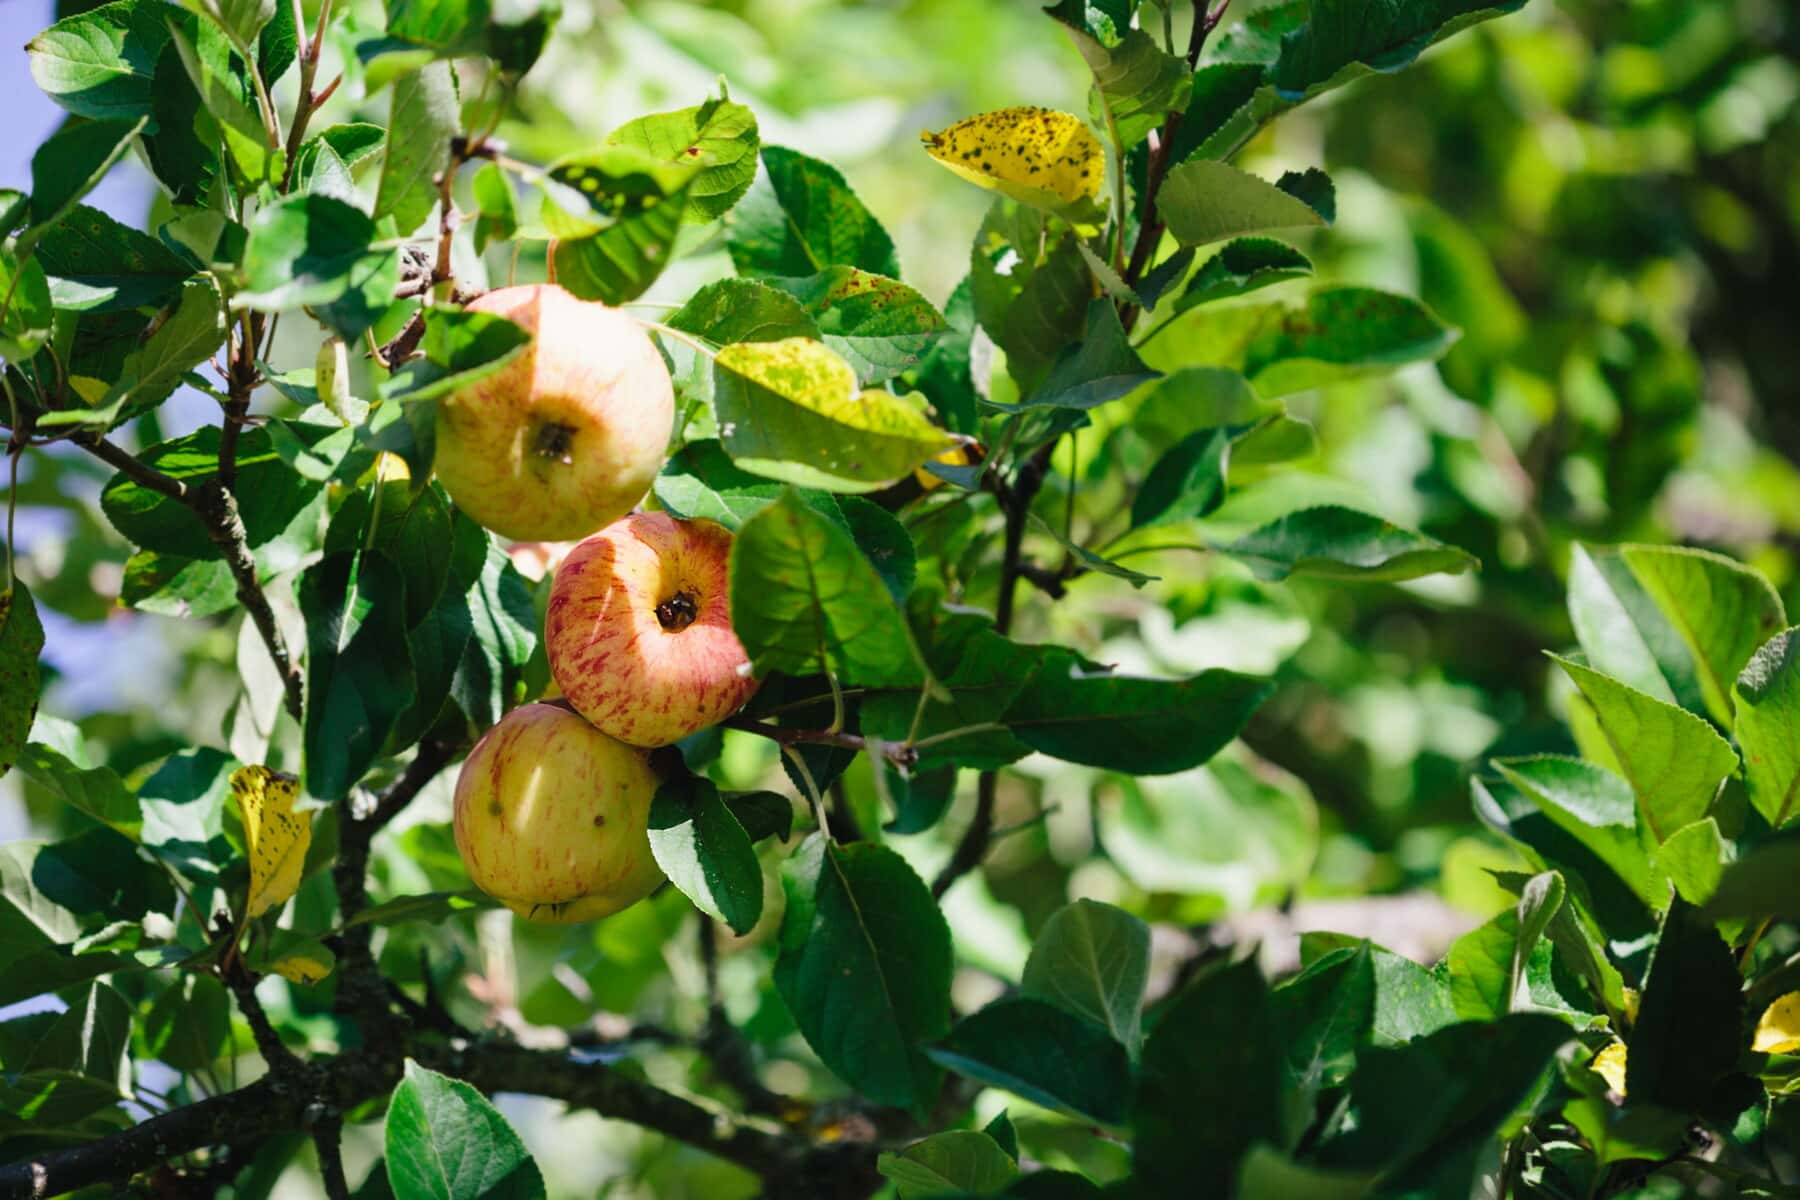 apple tree, apples, orchard, agriculture, tree, fruit, food, nature, leaf, quince